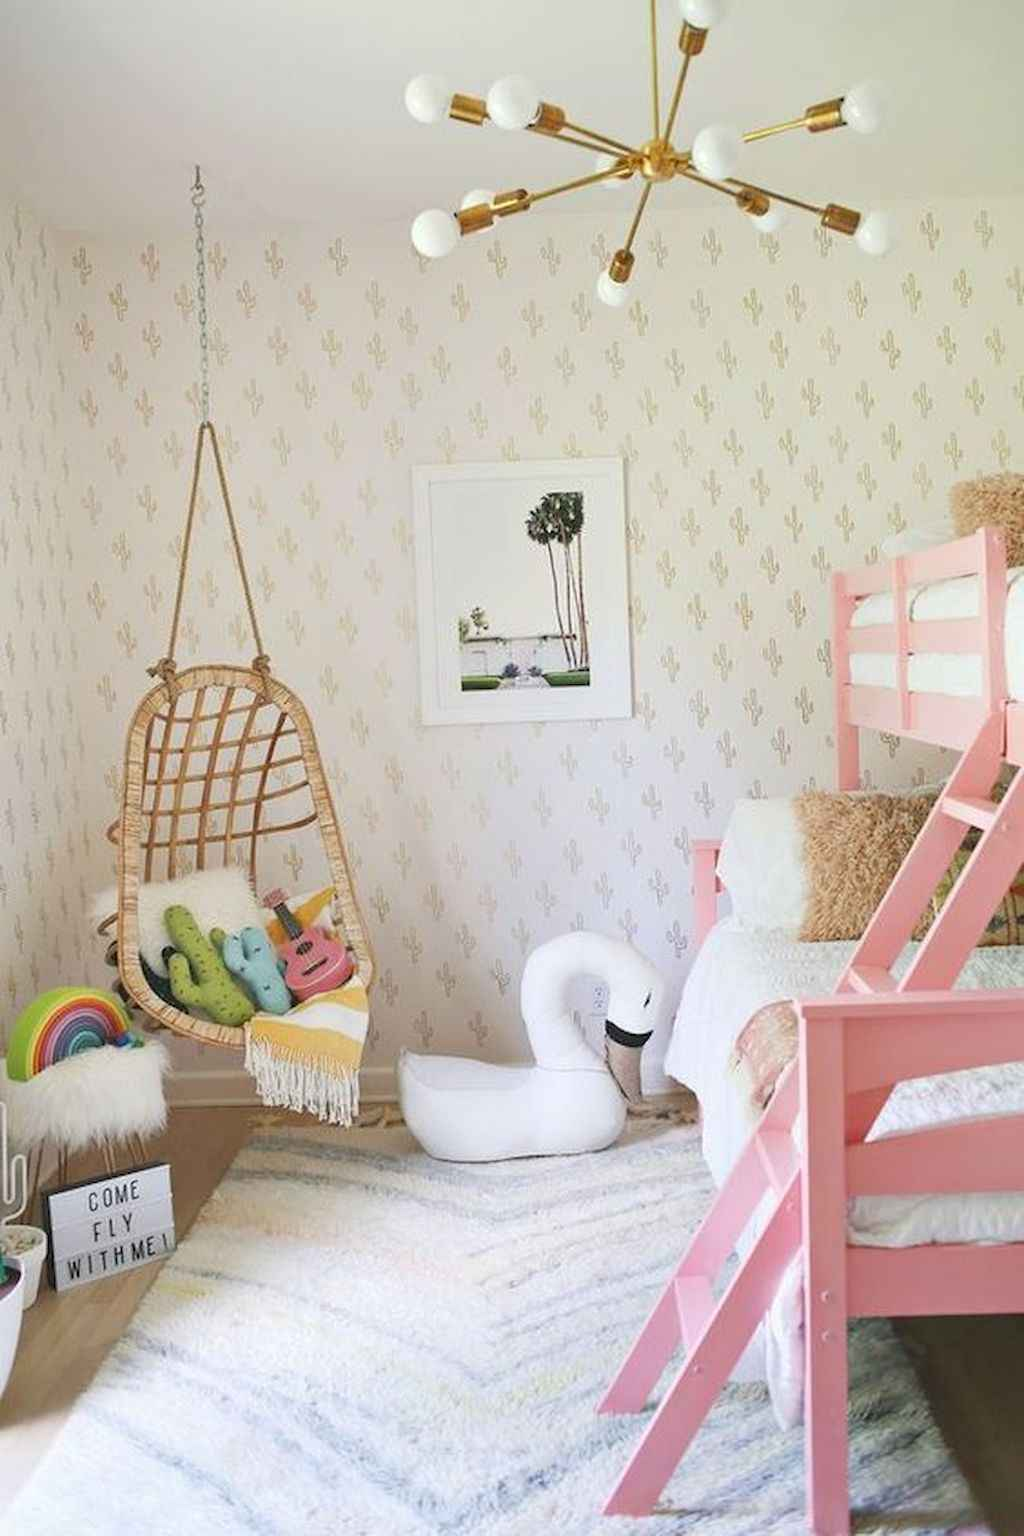 Awesome ideas bedroom for kids (14)